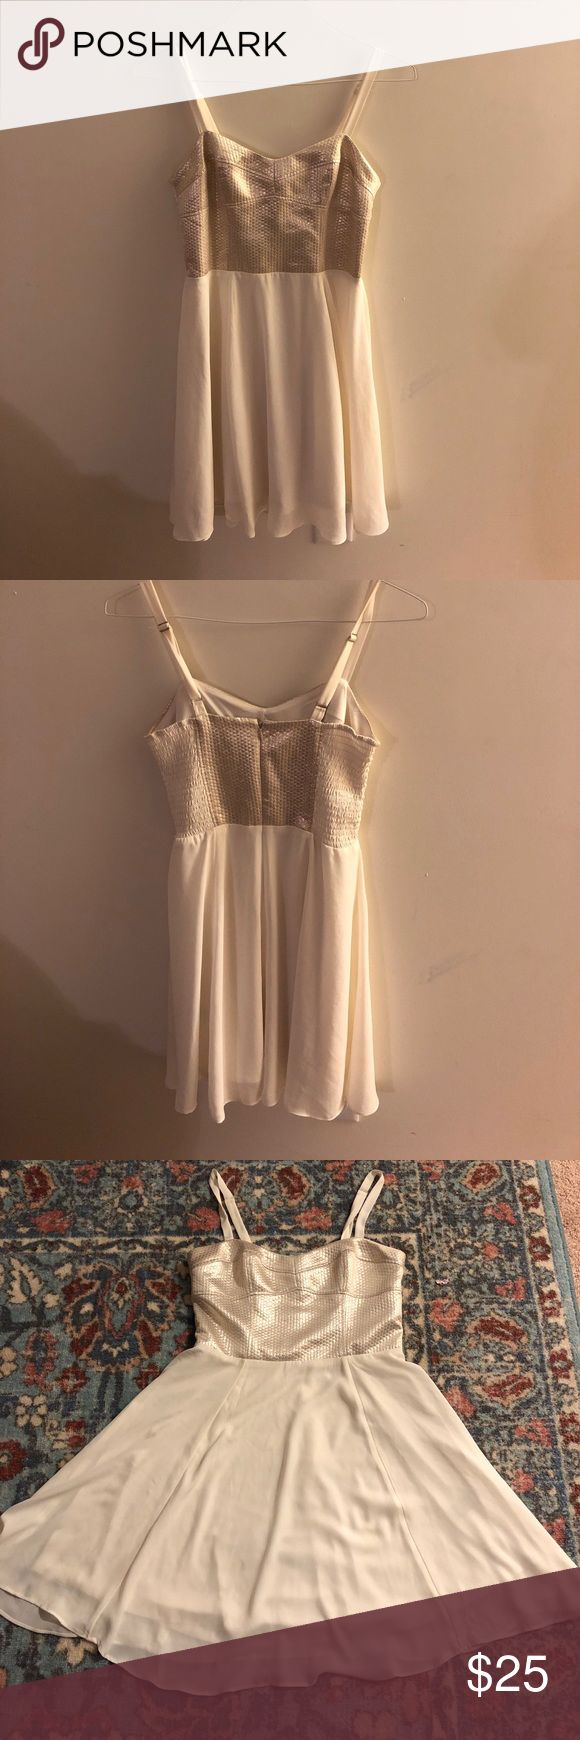 Gold cami shift dress This gold cami dress is perfect for the holidays throw on some res lipstick and you will surely stand out ! Express Dresses